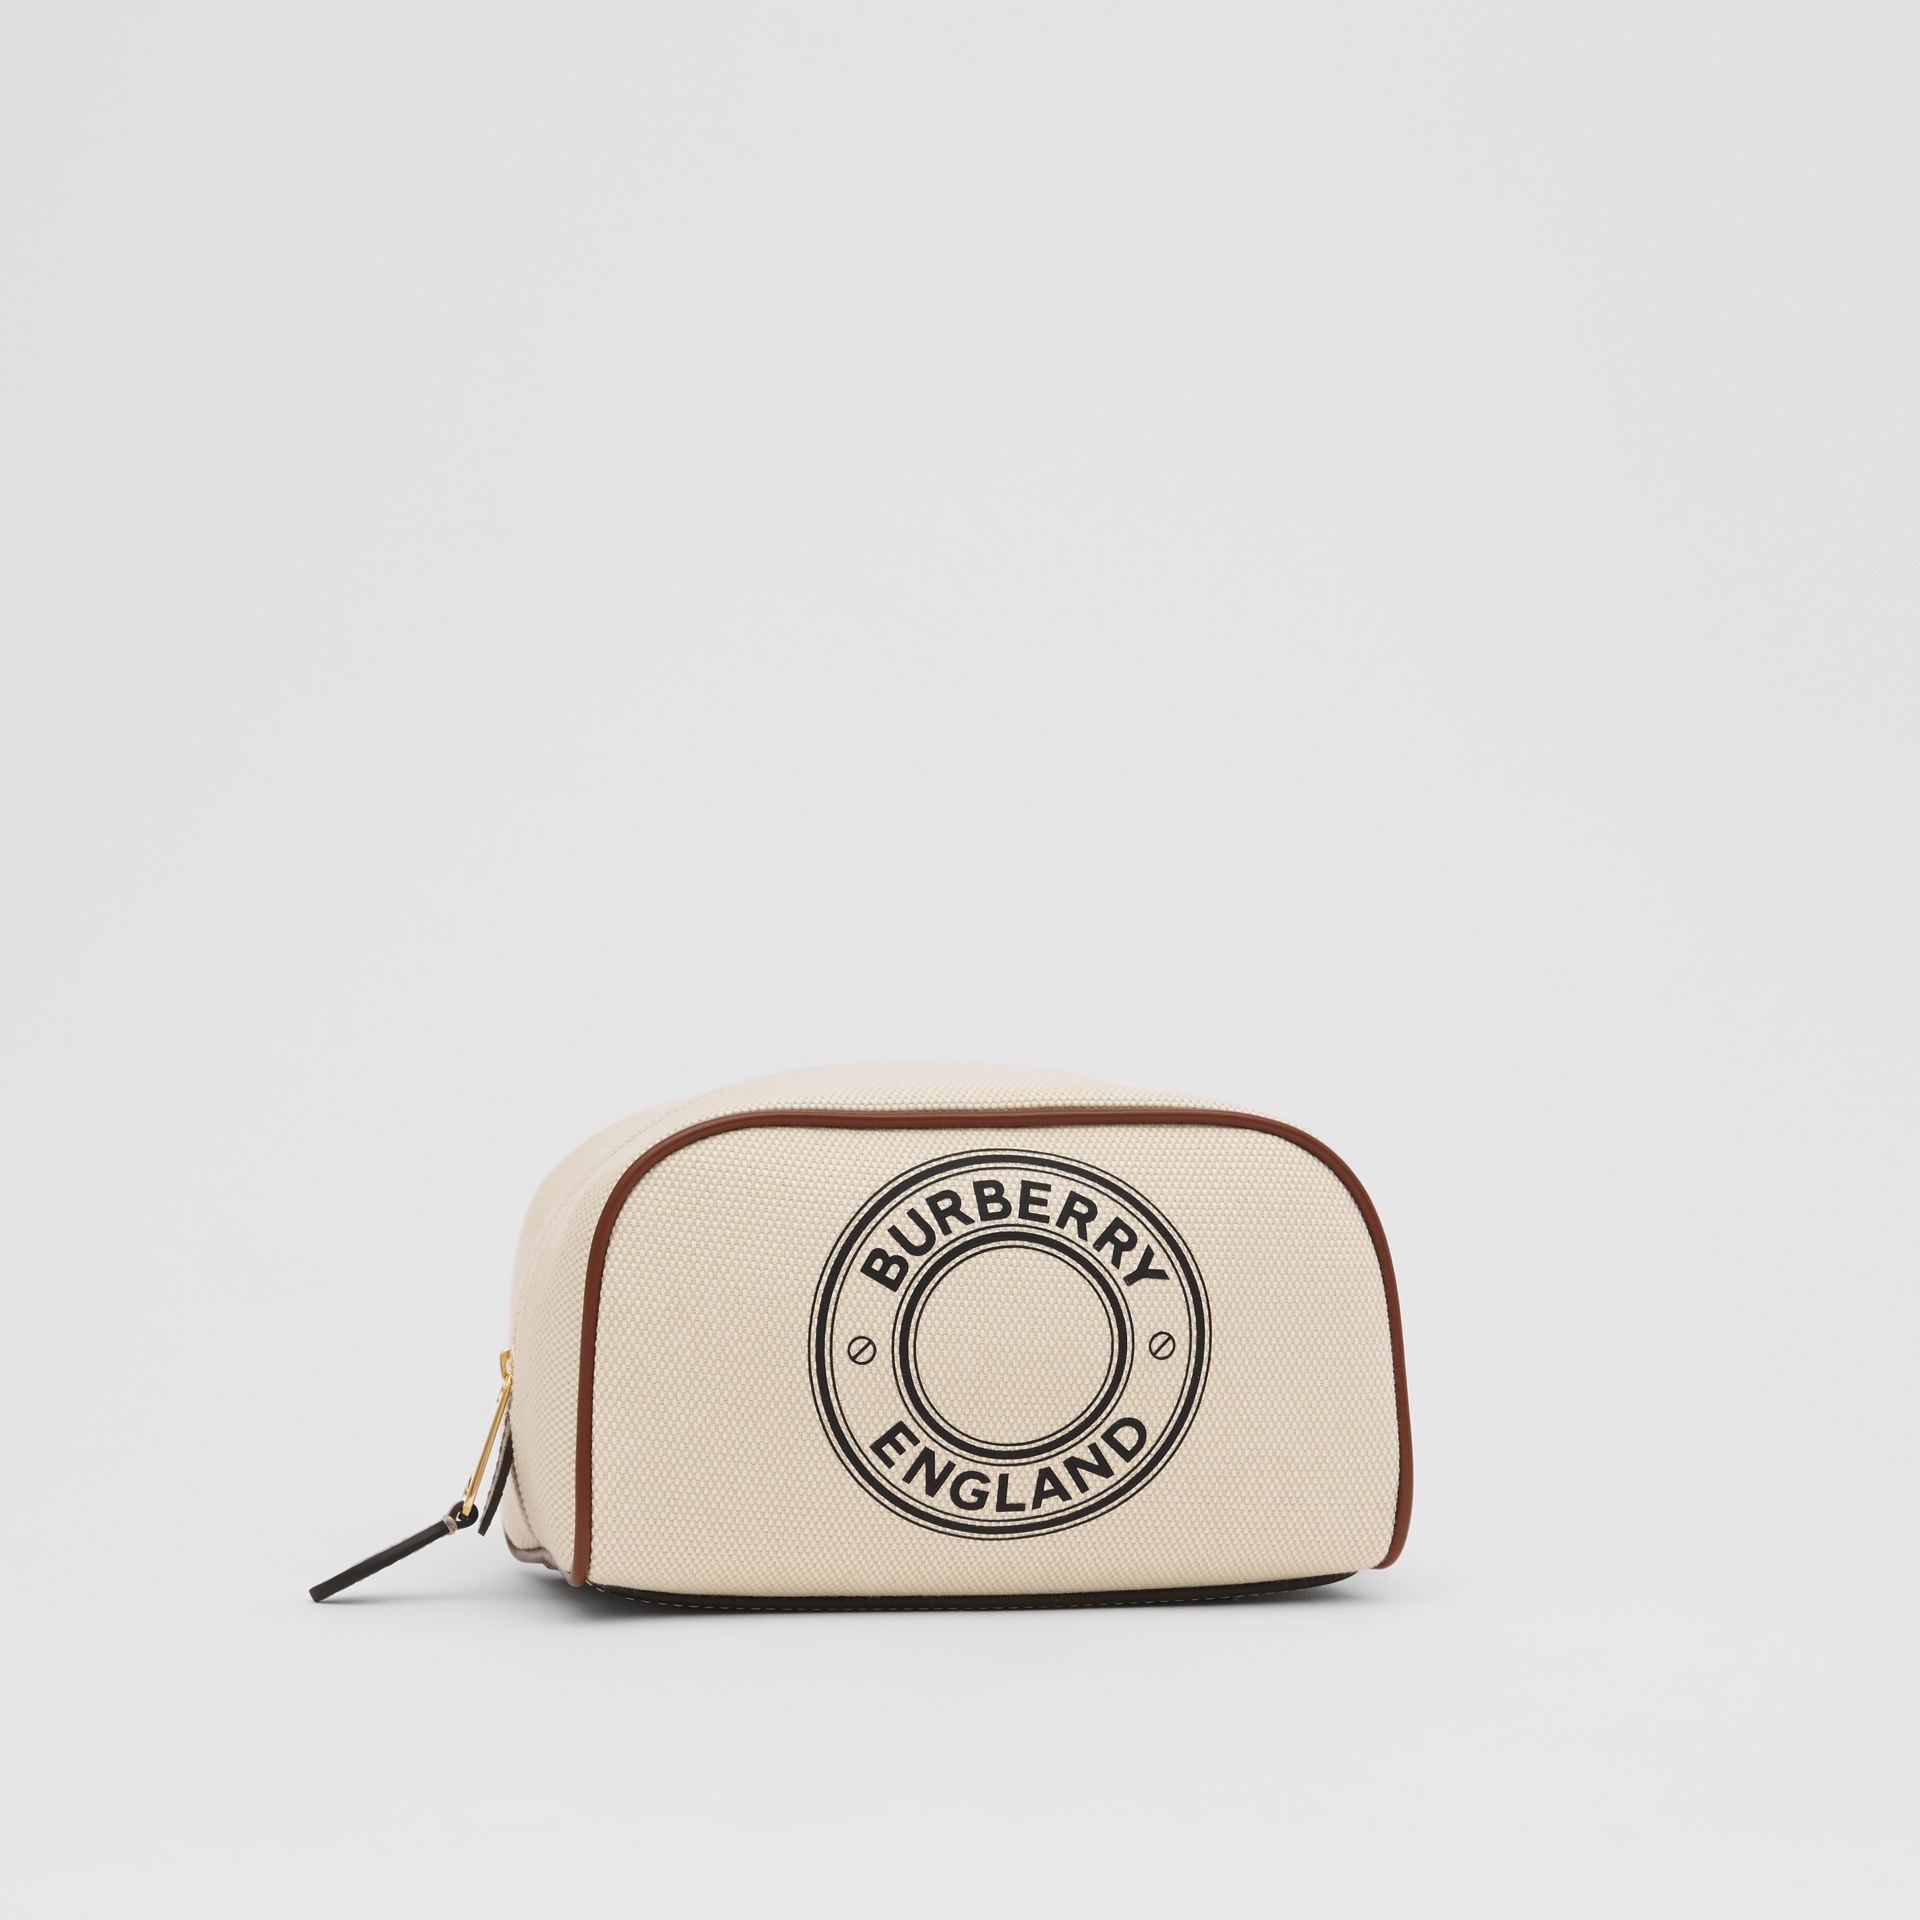 Small Logo Graphic Cotton Canvas Travel Pouch in White/tan - Women | Burberry United Kingdom - gallery image 6